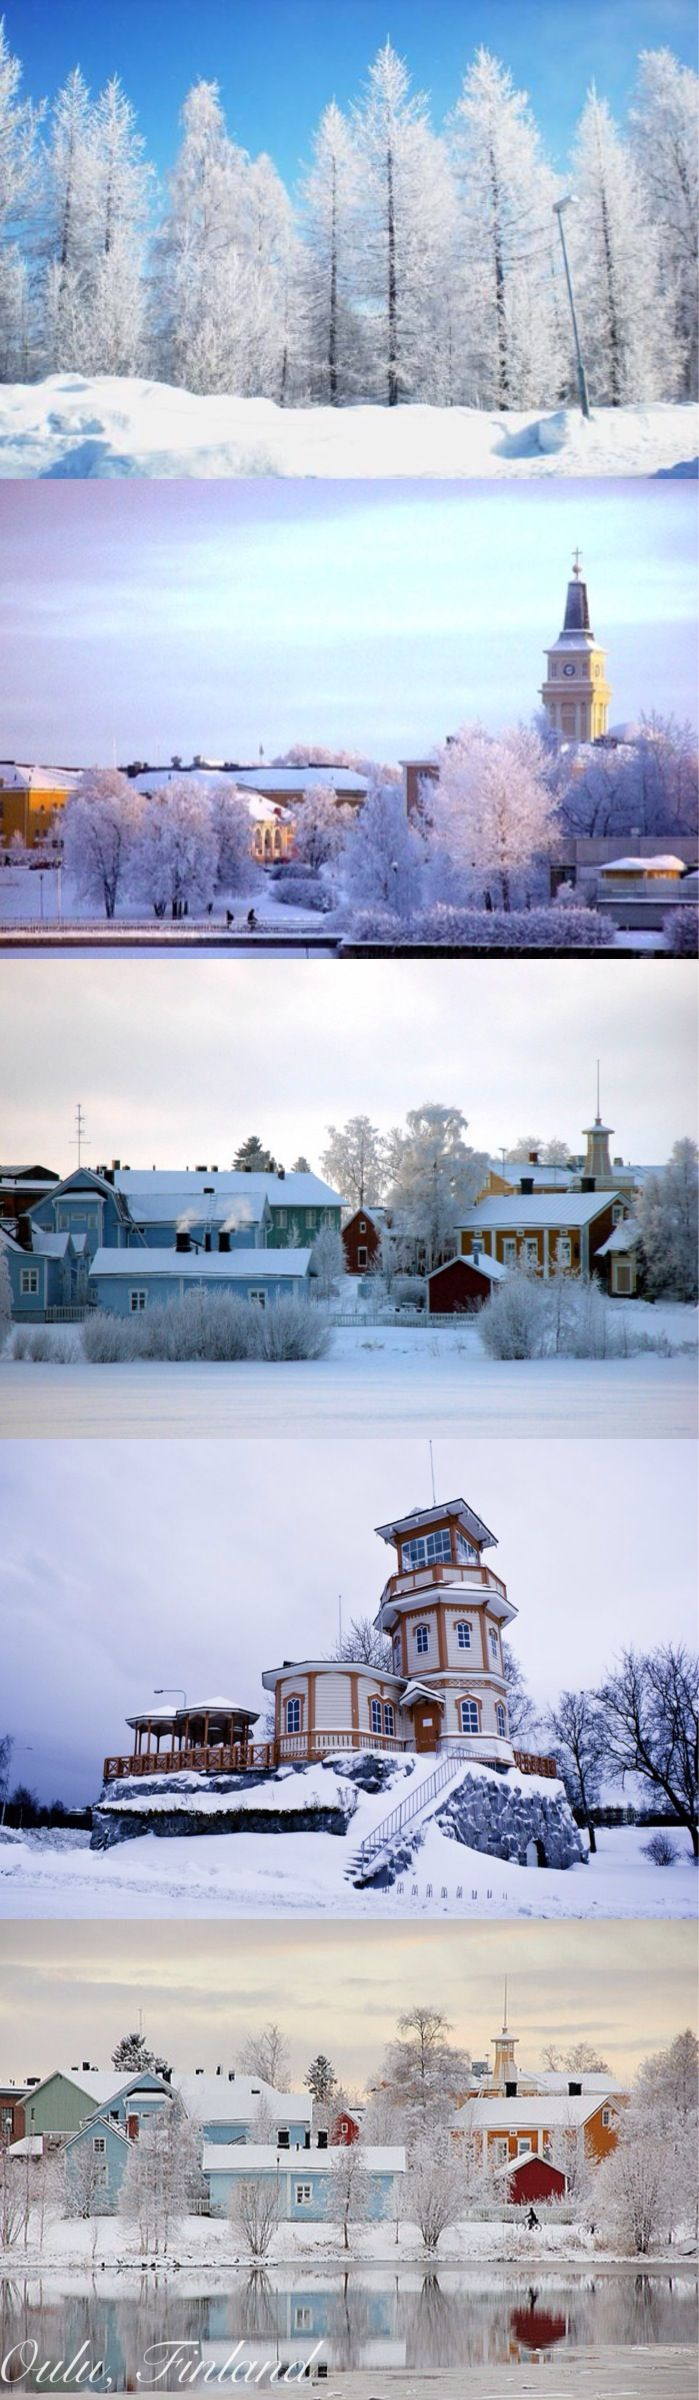 Oulu in the winter, Finland.